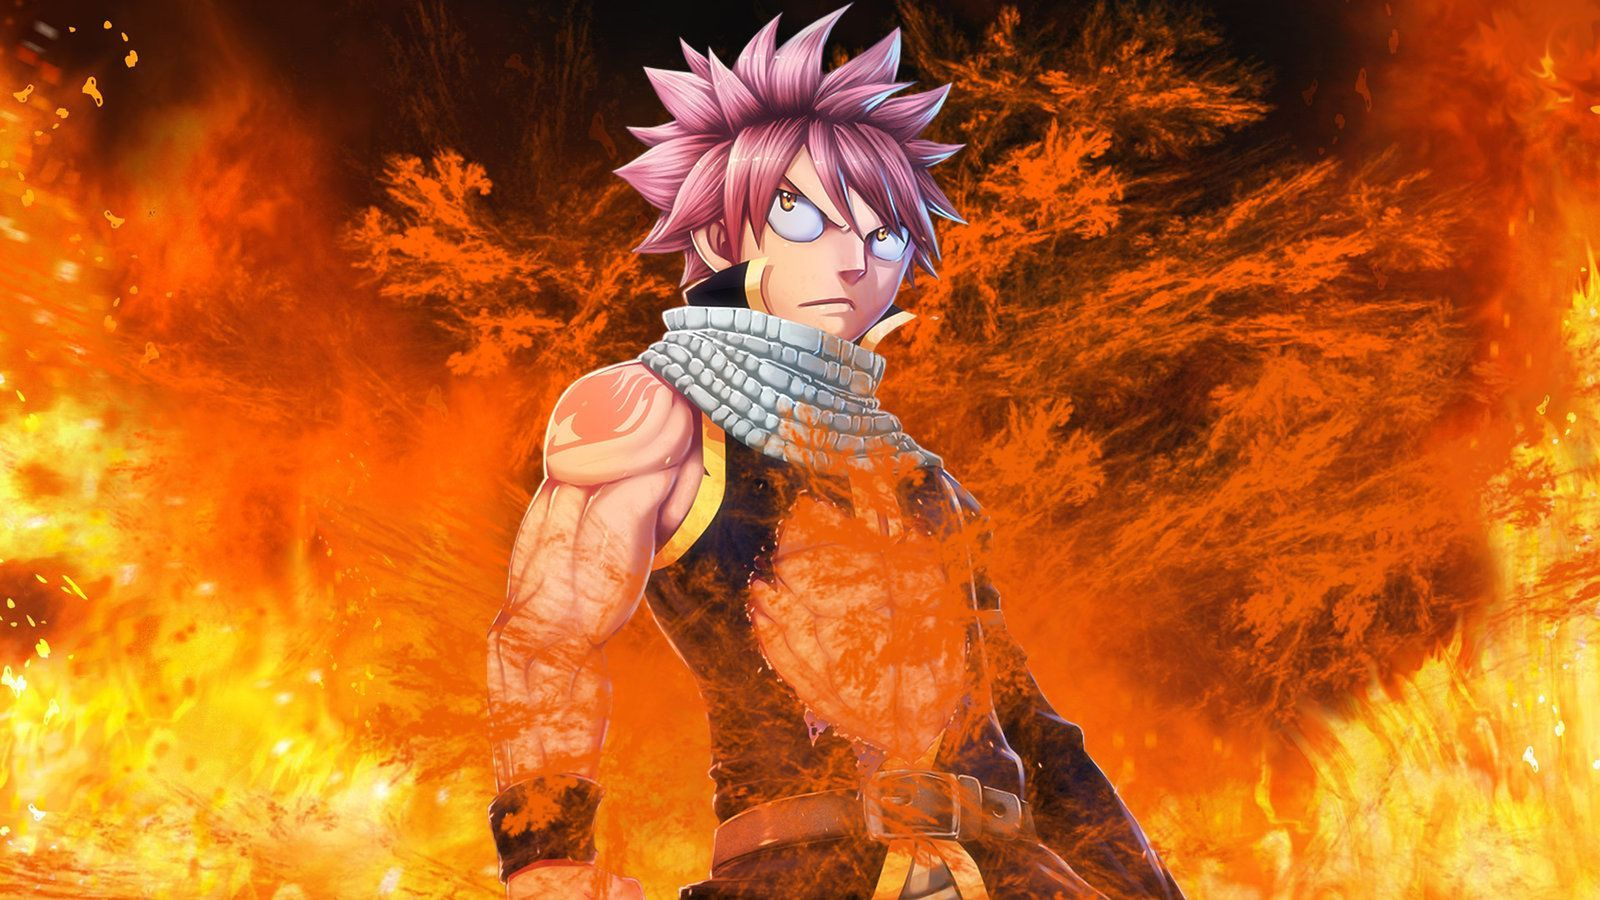 Fairy Tail Natsu Wallpapers For Iphone Anime Hd Wallpaper